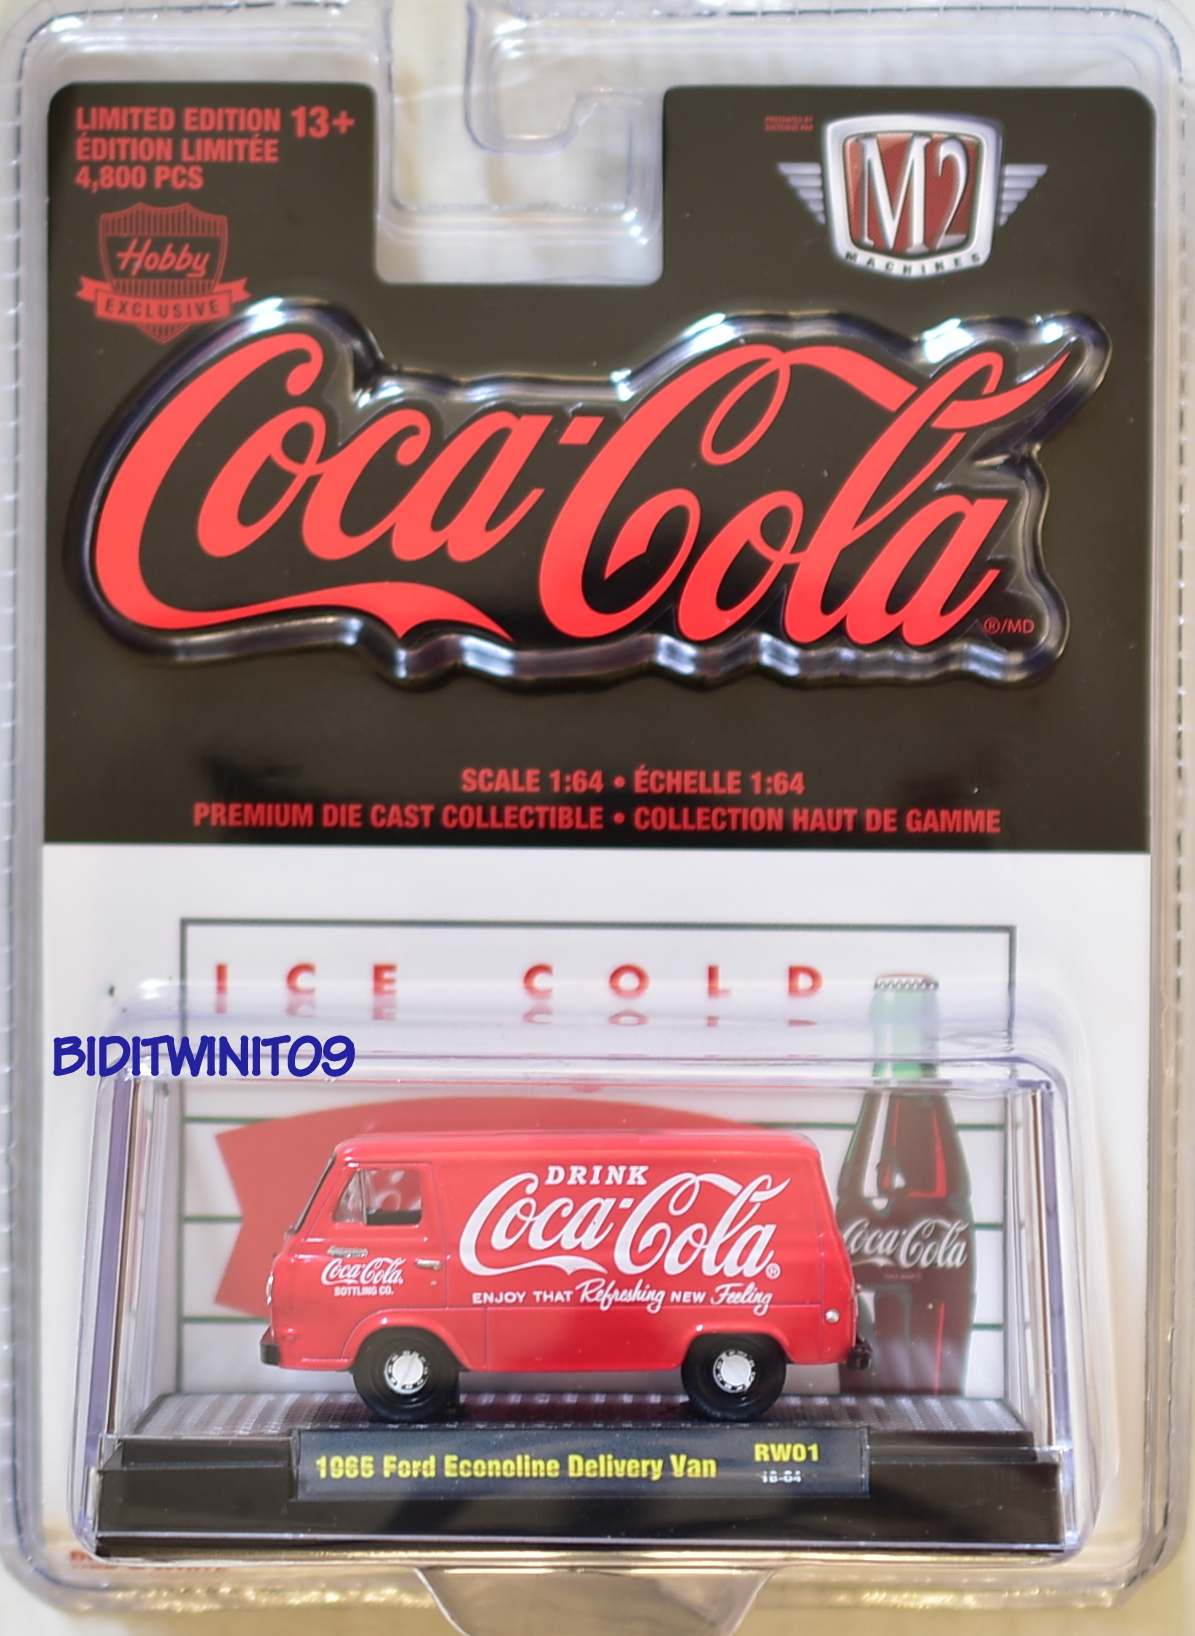 M2 MACHINES COCA COLA COKE HOBBY 1965 FORD ECONOLINE DELIVERY VAN RW01